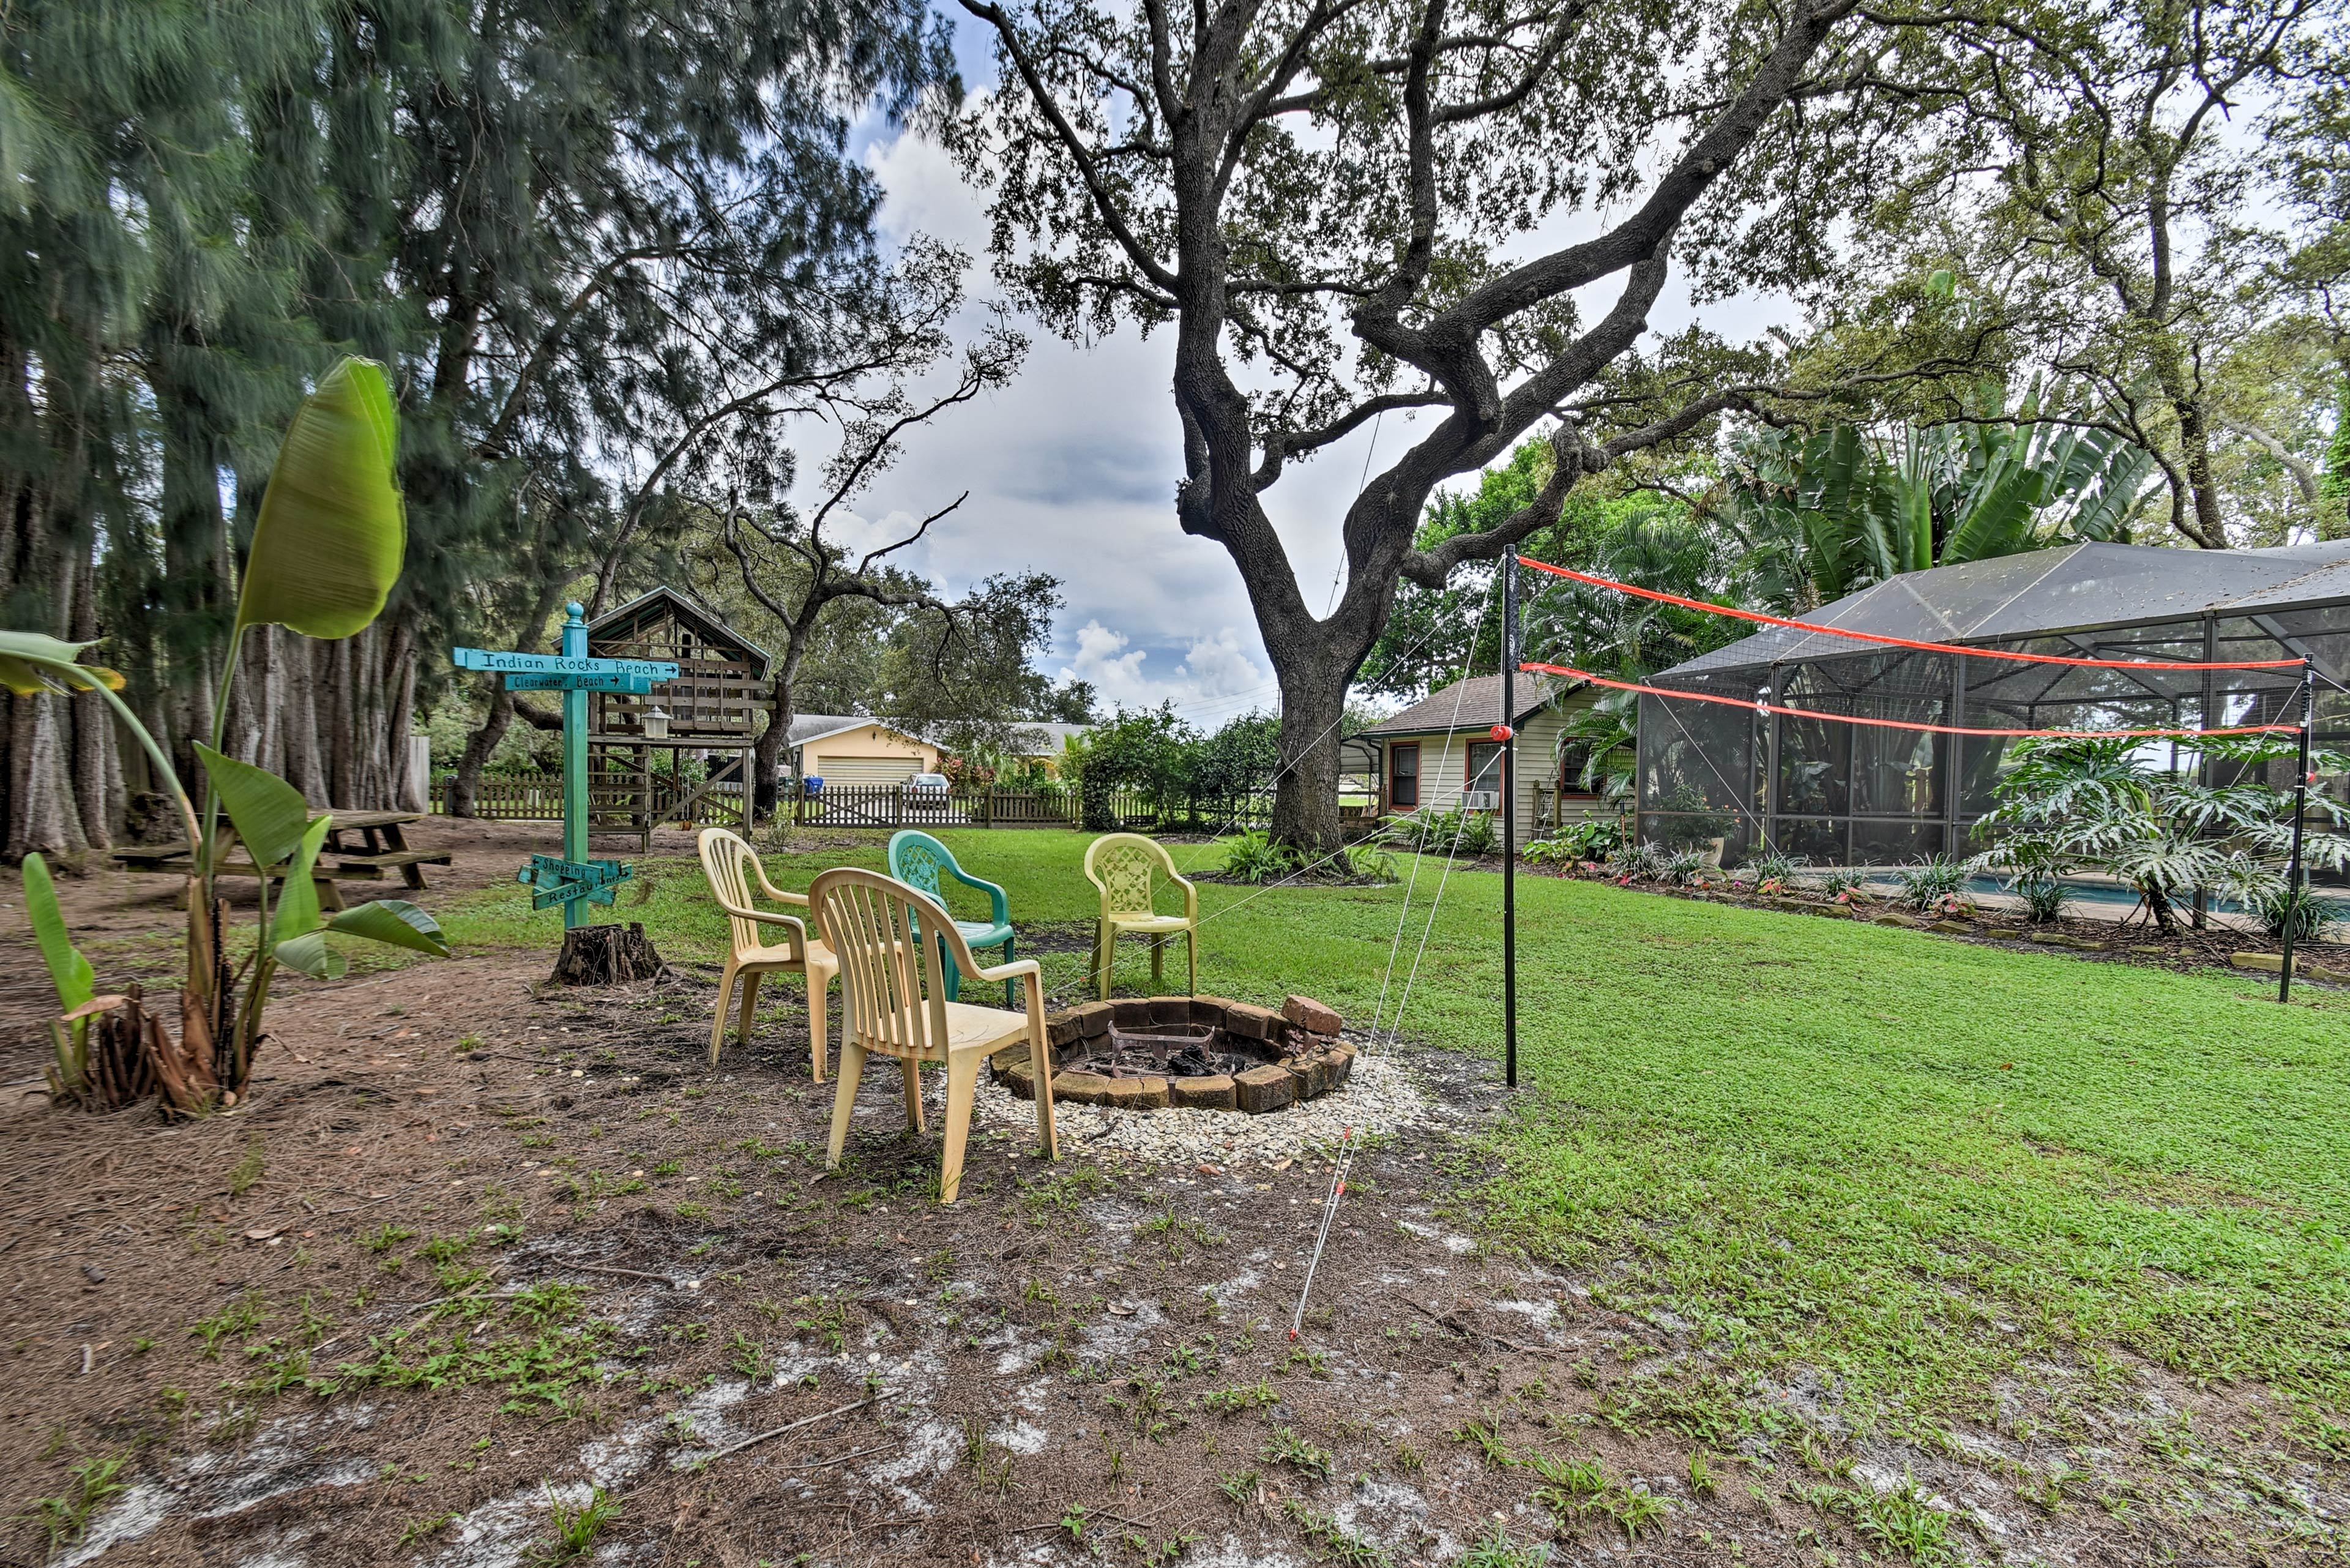 Venture out to the half-acre backyard with trees, a fire pit, and a tree house!